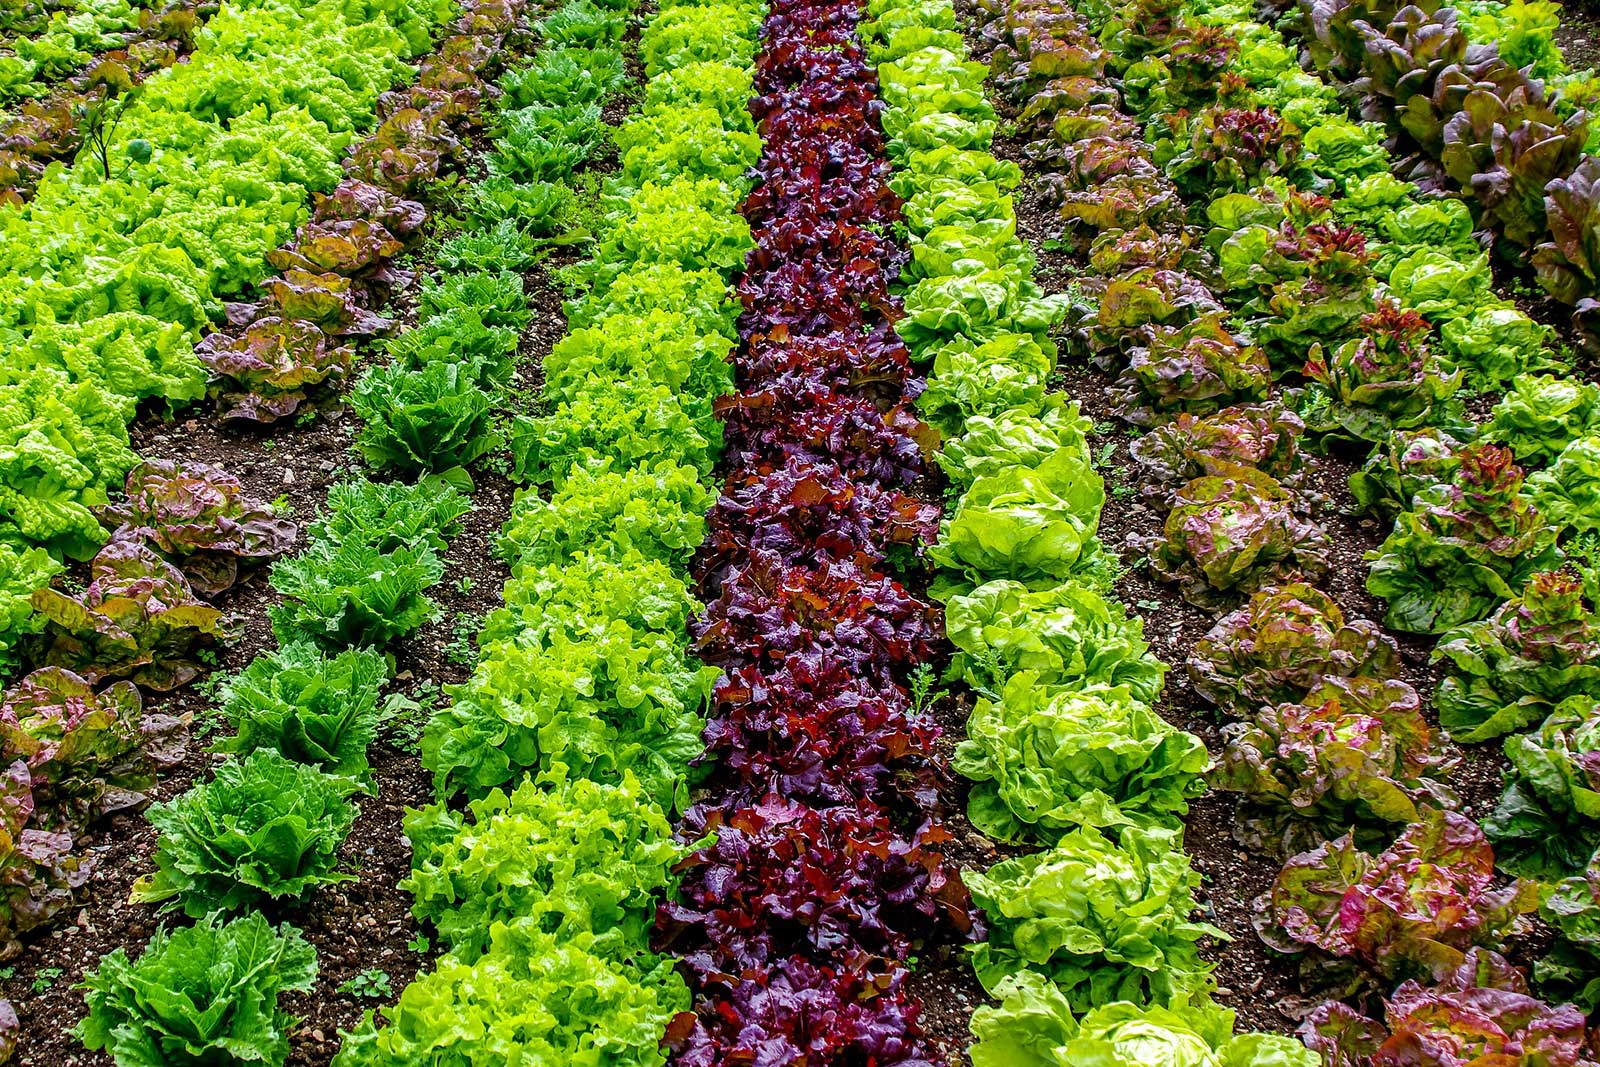 Food production and climate change